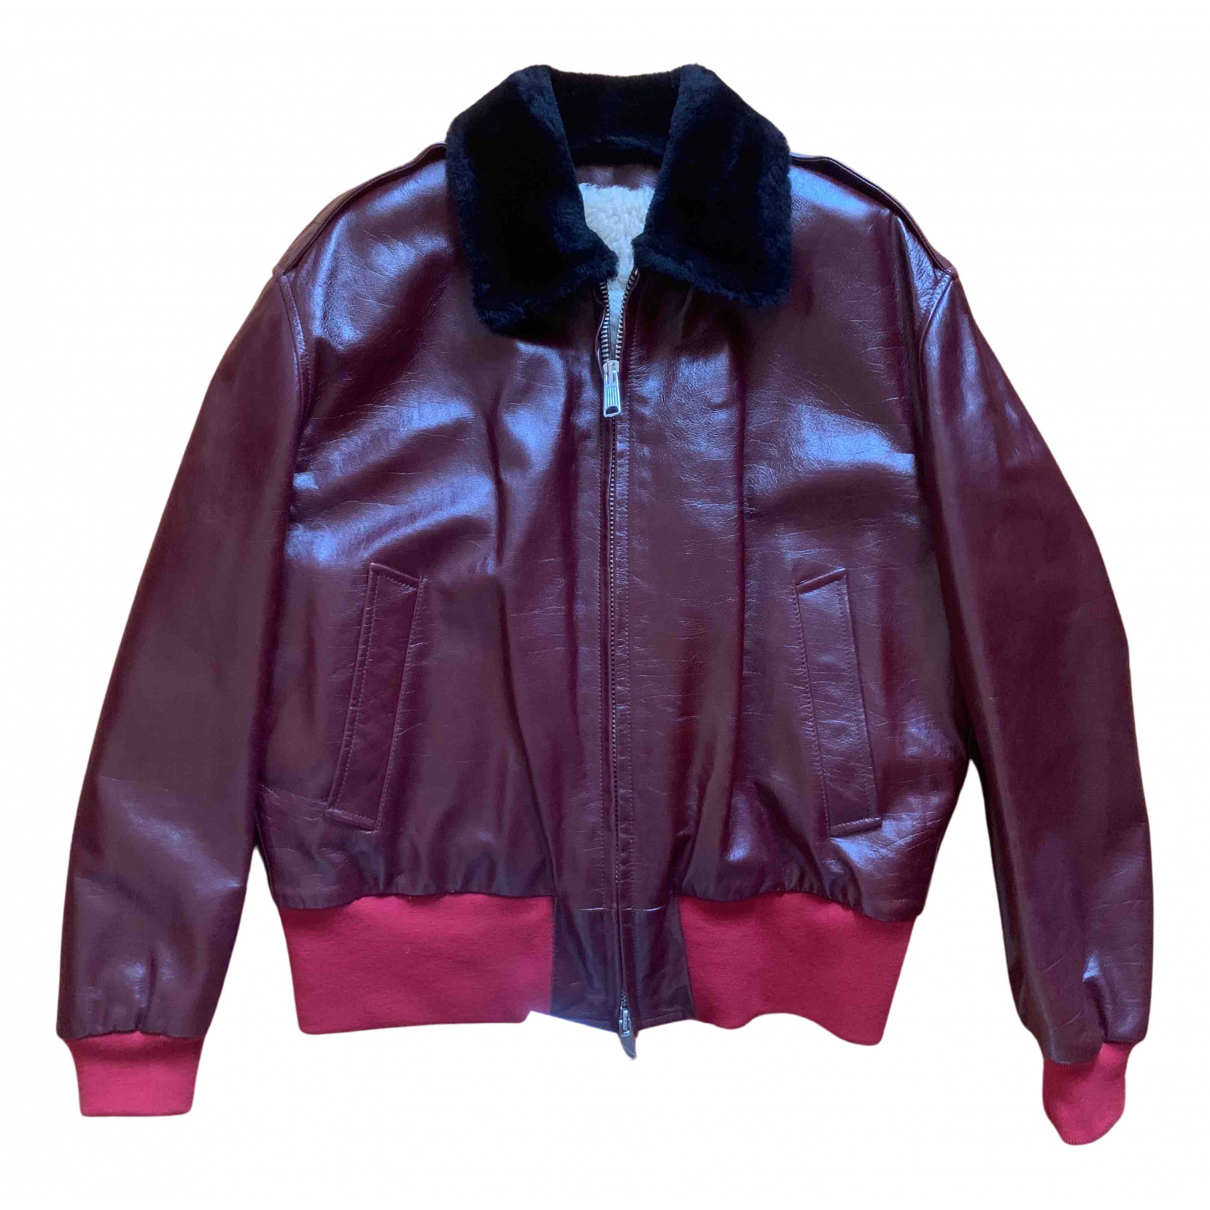 Calvin Klein 205w39nyc N Burgundy Leather Leather Jacket for Women